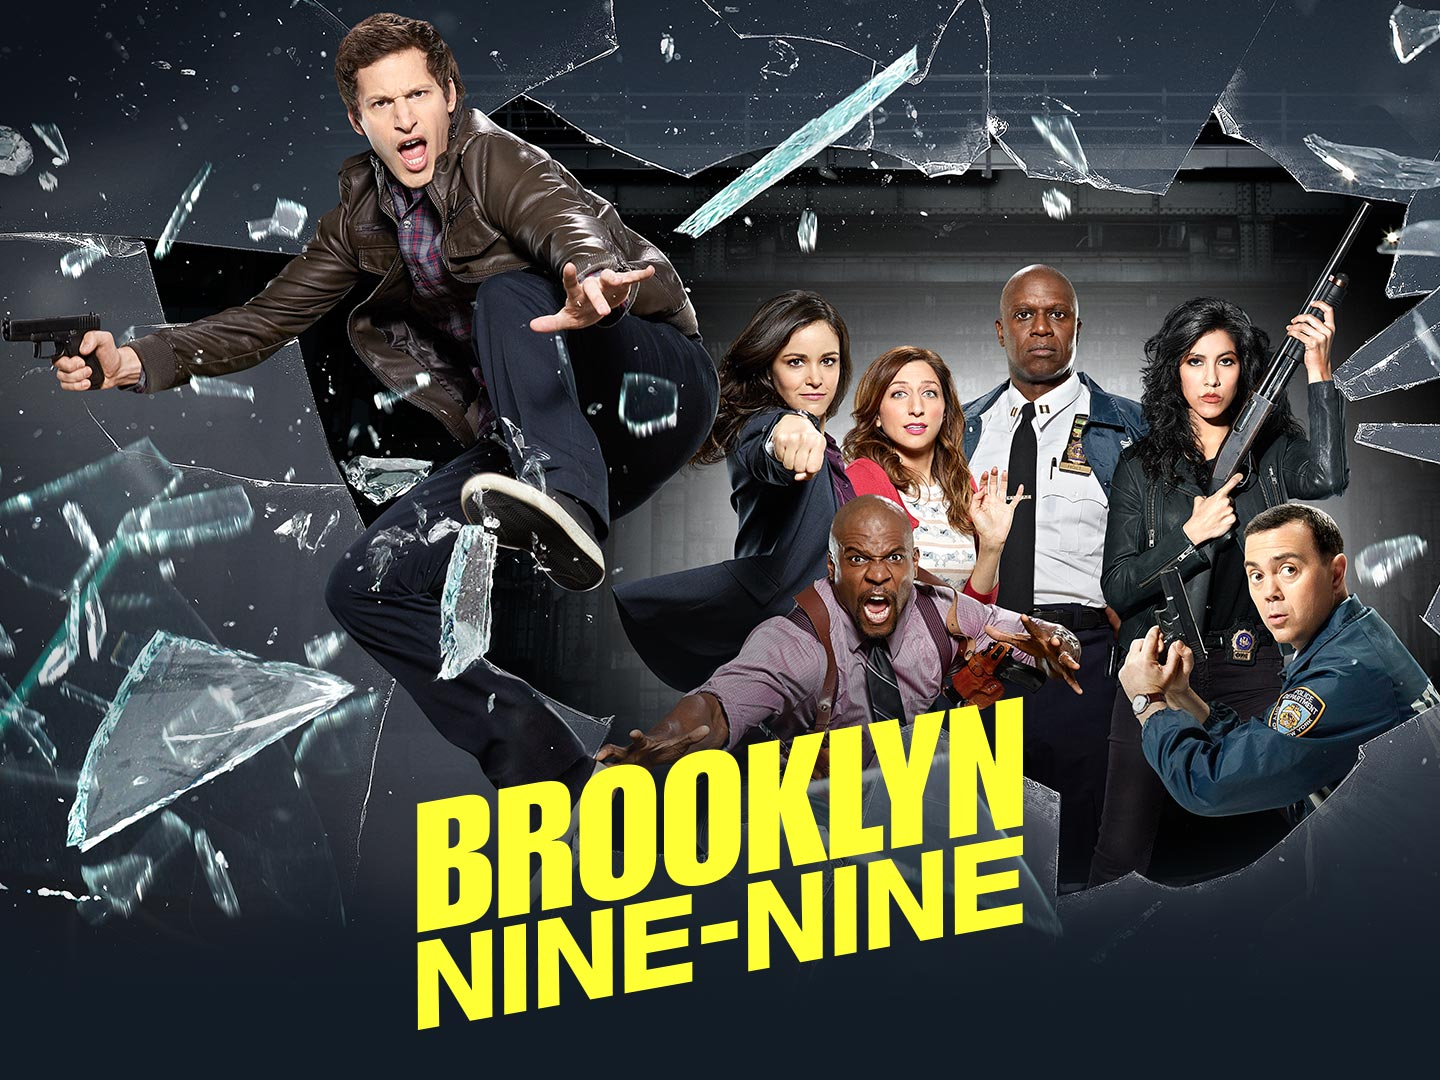 [discussion] Is 'Brooklyn 99' one of the best comedy shows? - Entertainment - ATRL